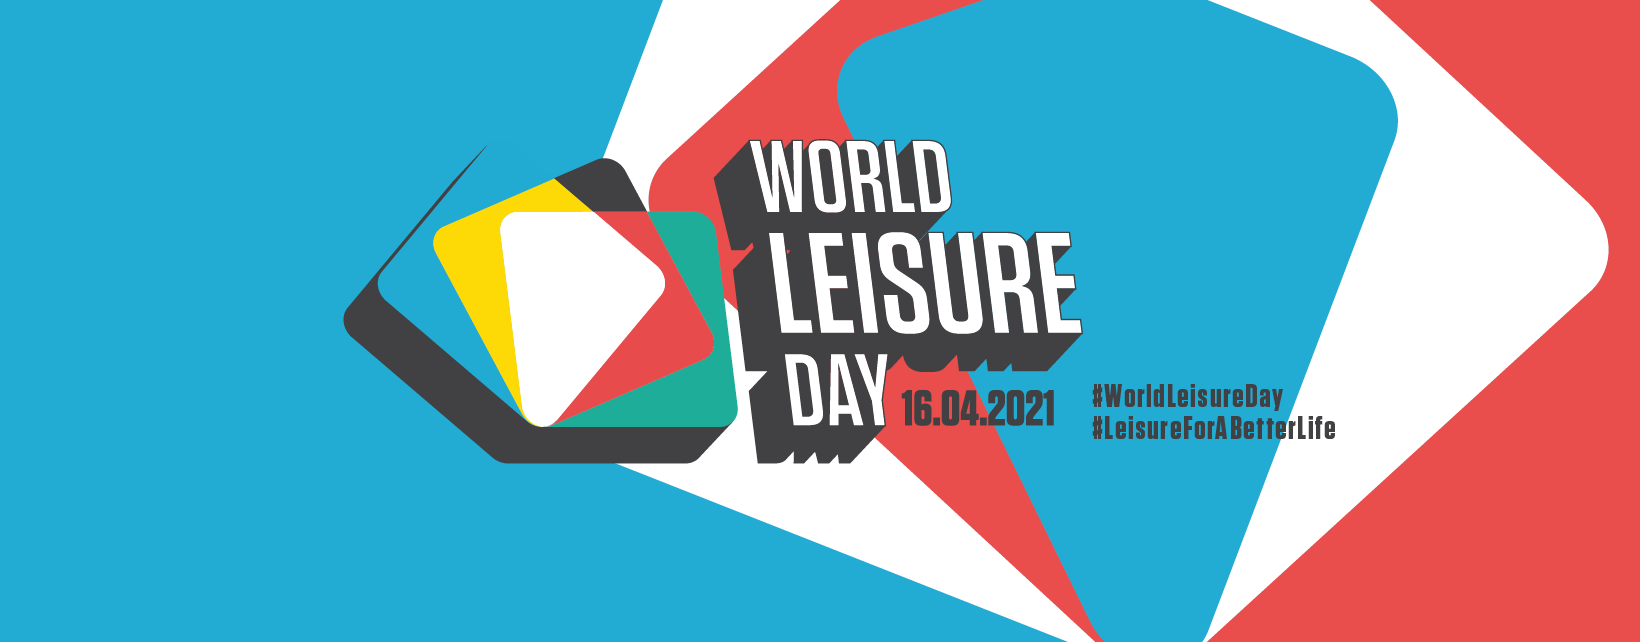 ISTO joins the celebrations of the World Leisure Day 2021